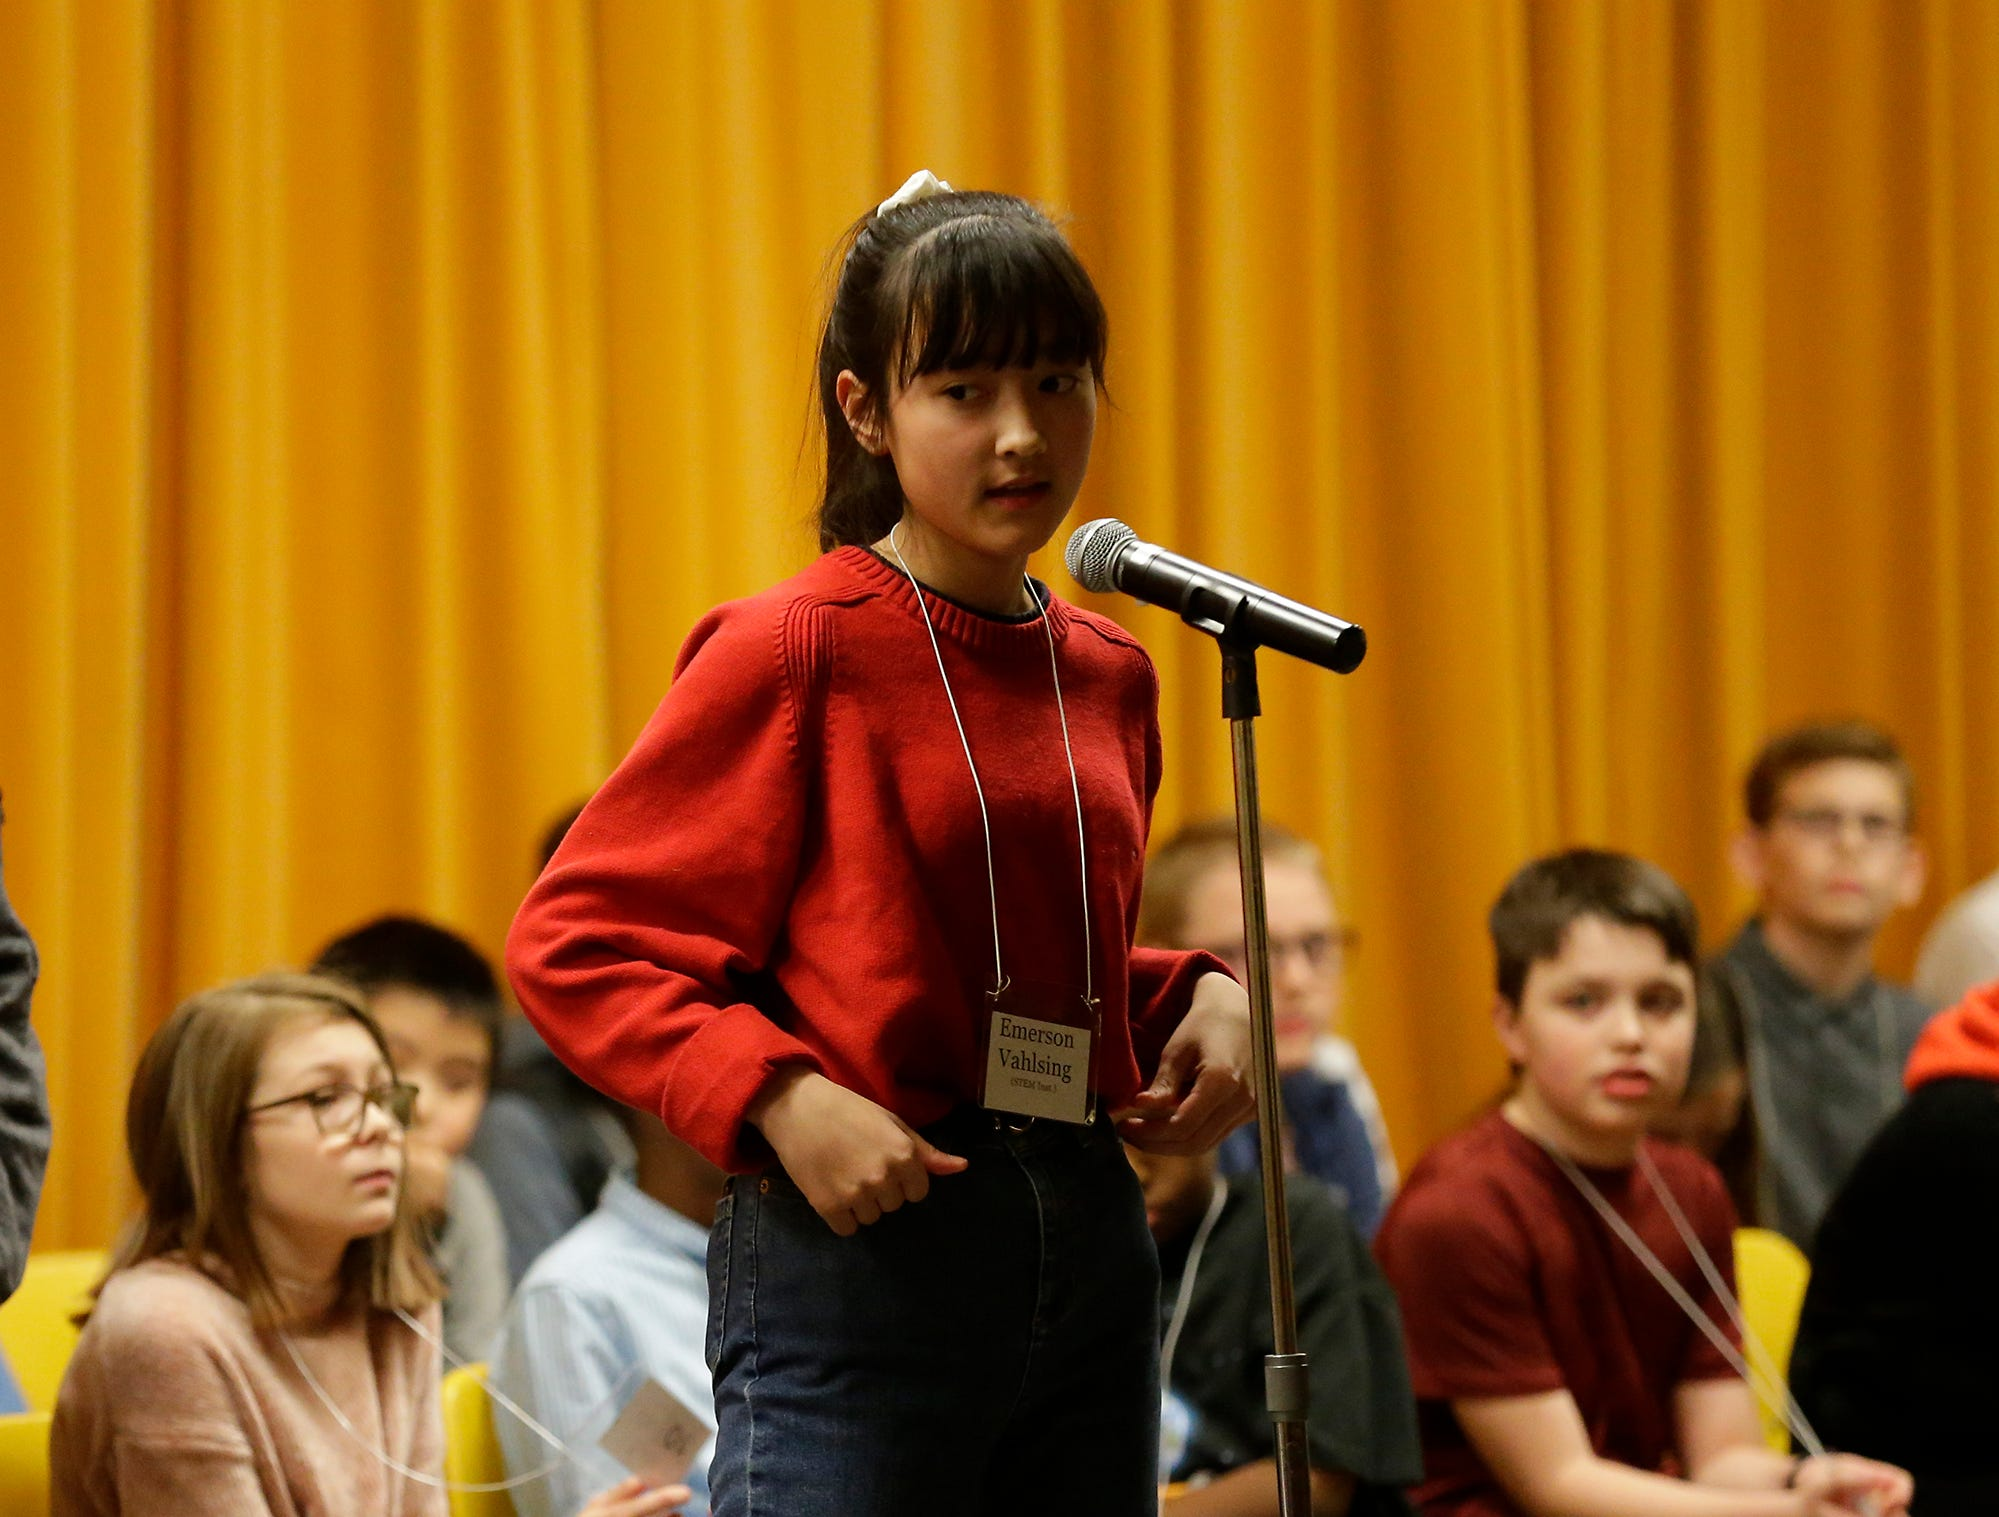 Emerson Vahlsing of STEM Institute competes in the Fond du Lac citywide spelling bee Tuesday, February 26, 2019 at These Middle School in Fond du Lac, Wis. Doug Raflik/USA TODAY NETWORK-Wisconsin